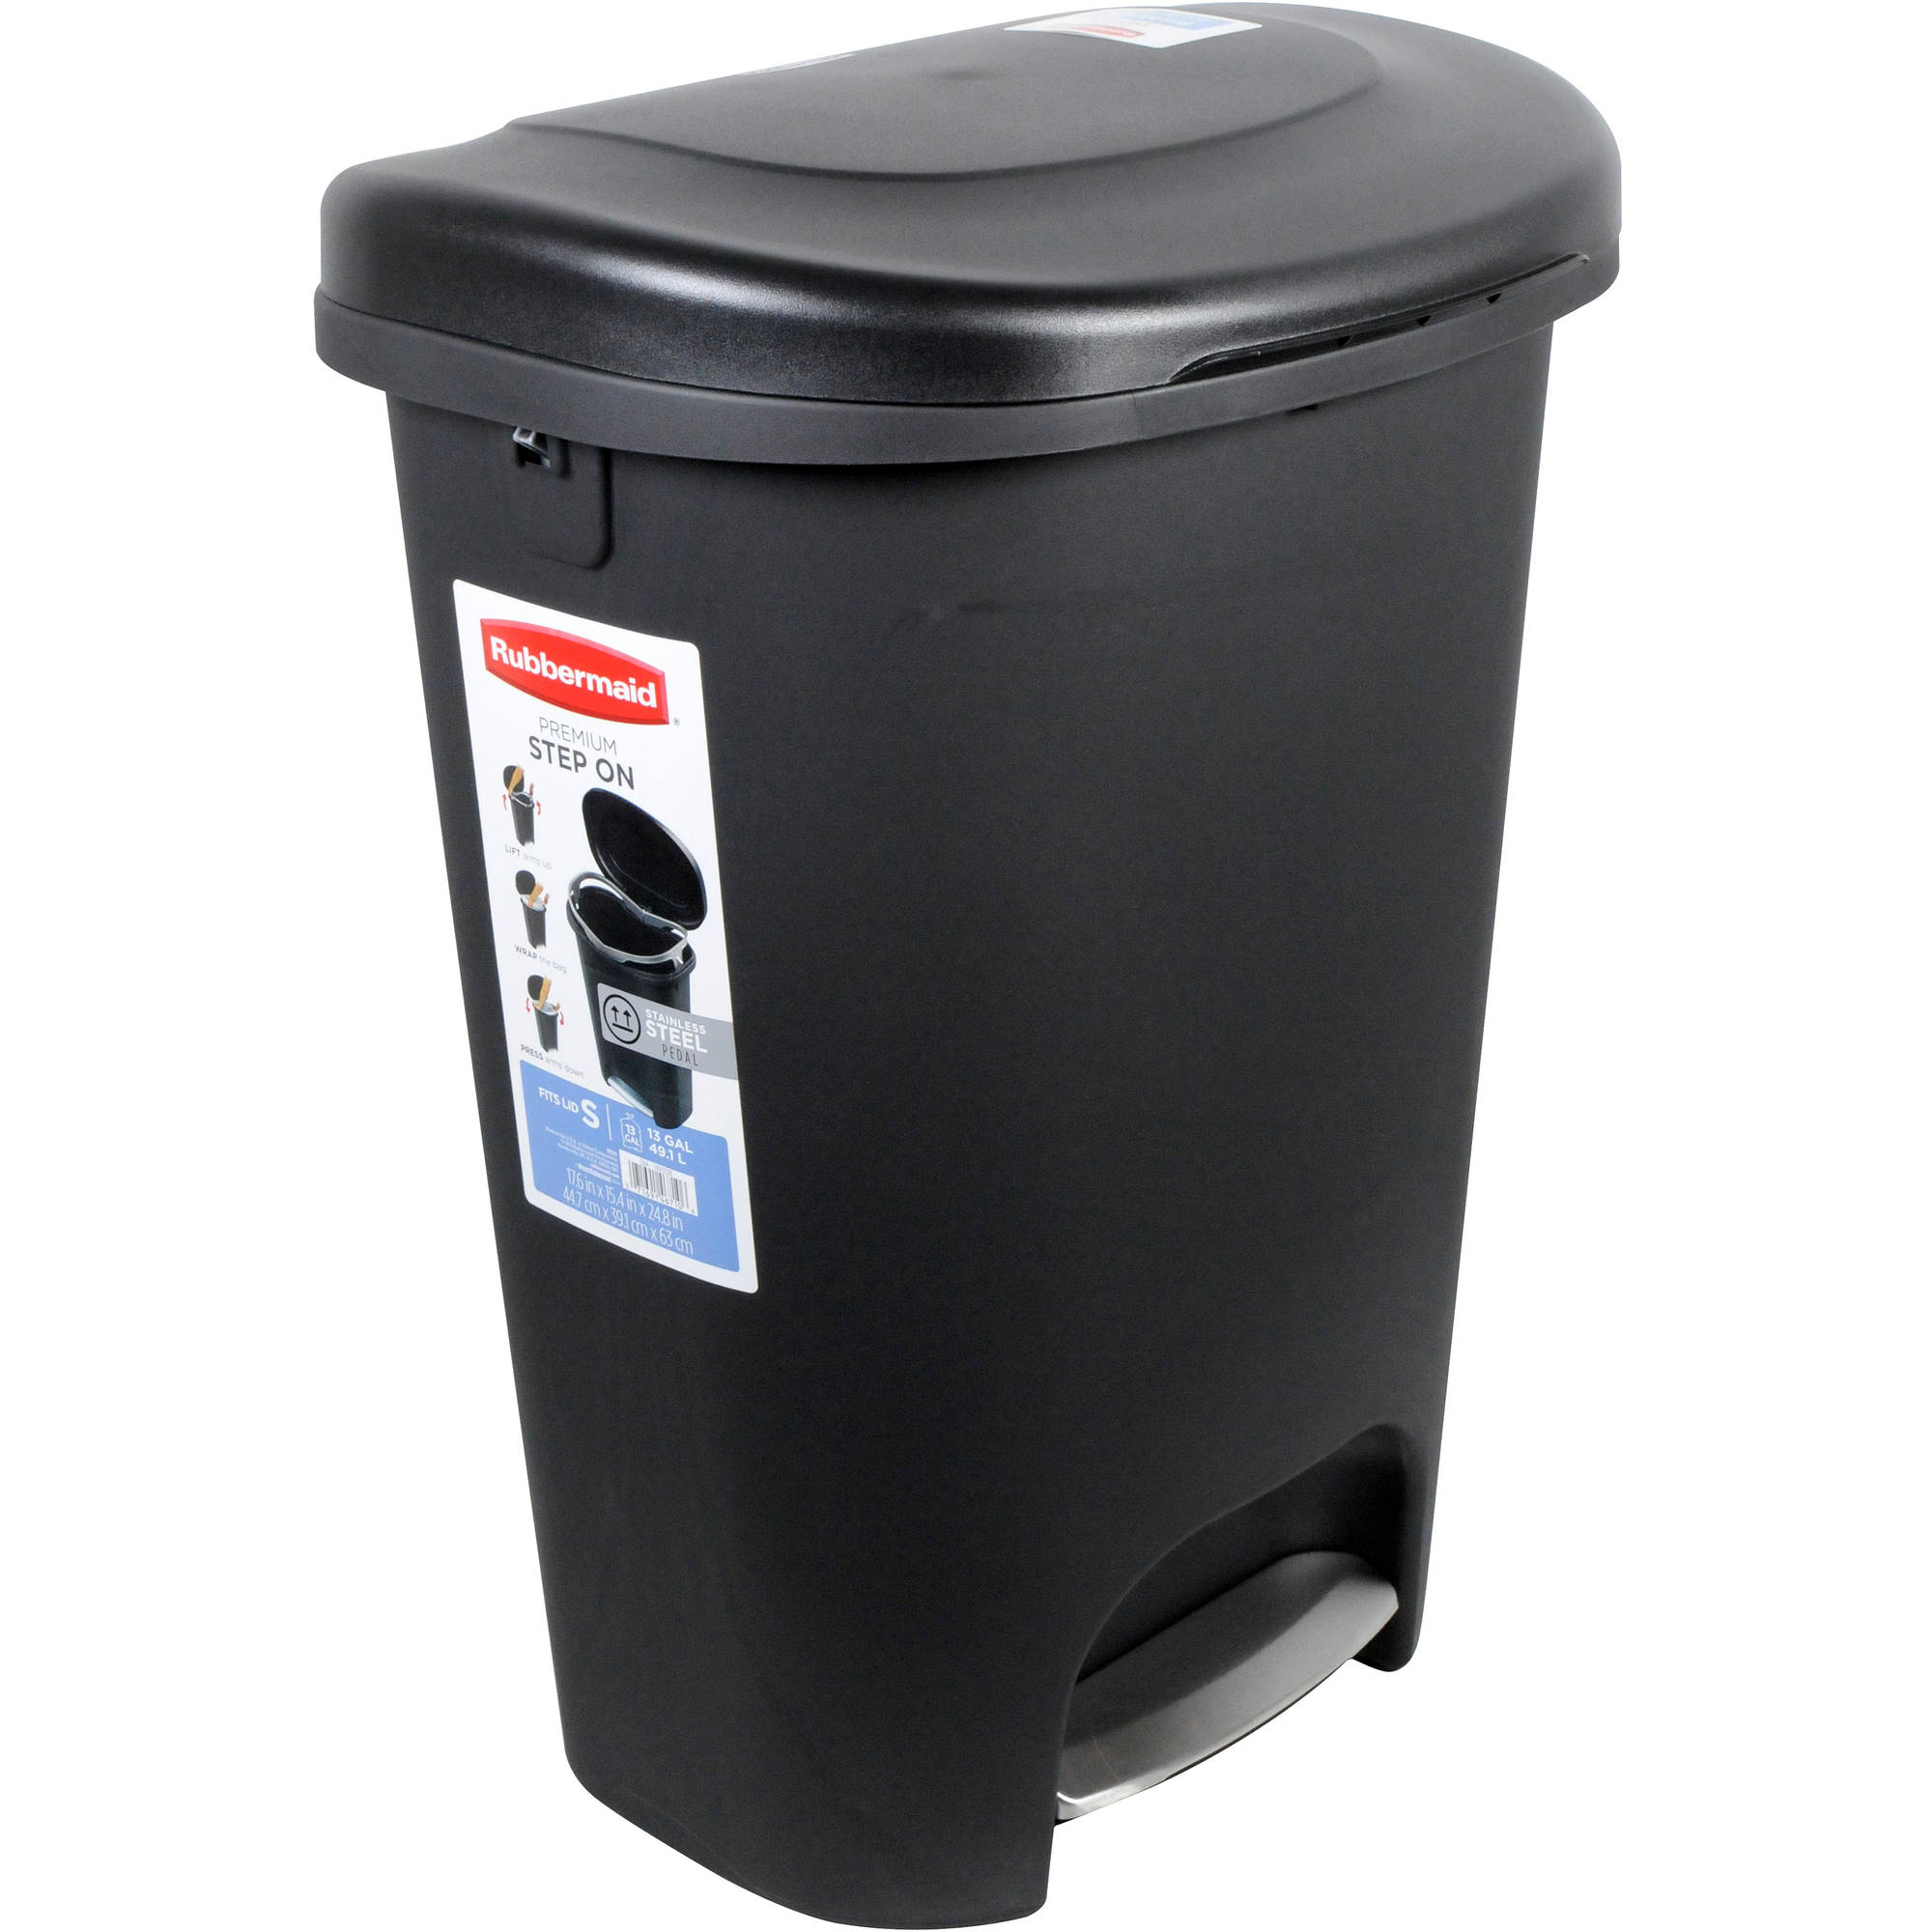 Rubbermaid Premium Step On Trash Can 13 Gal Black With Metal Accent